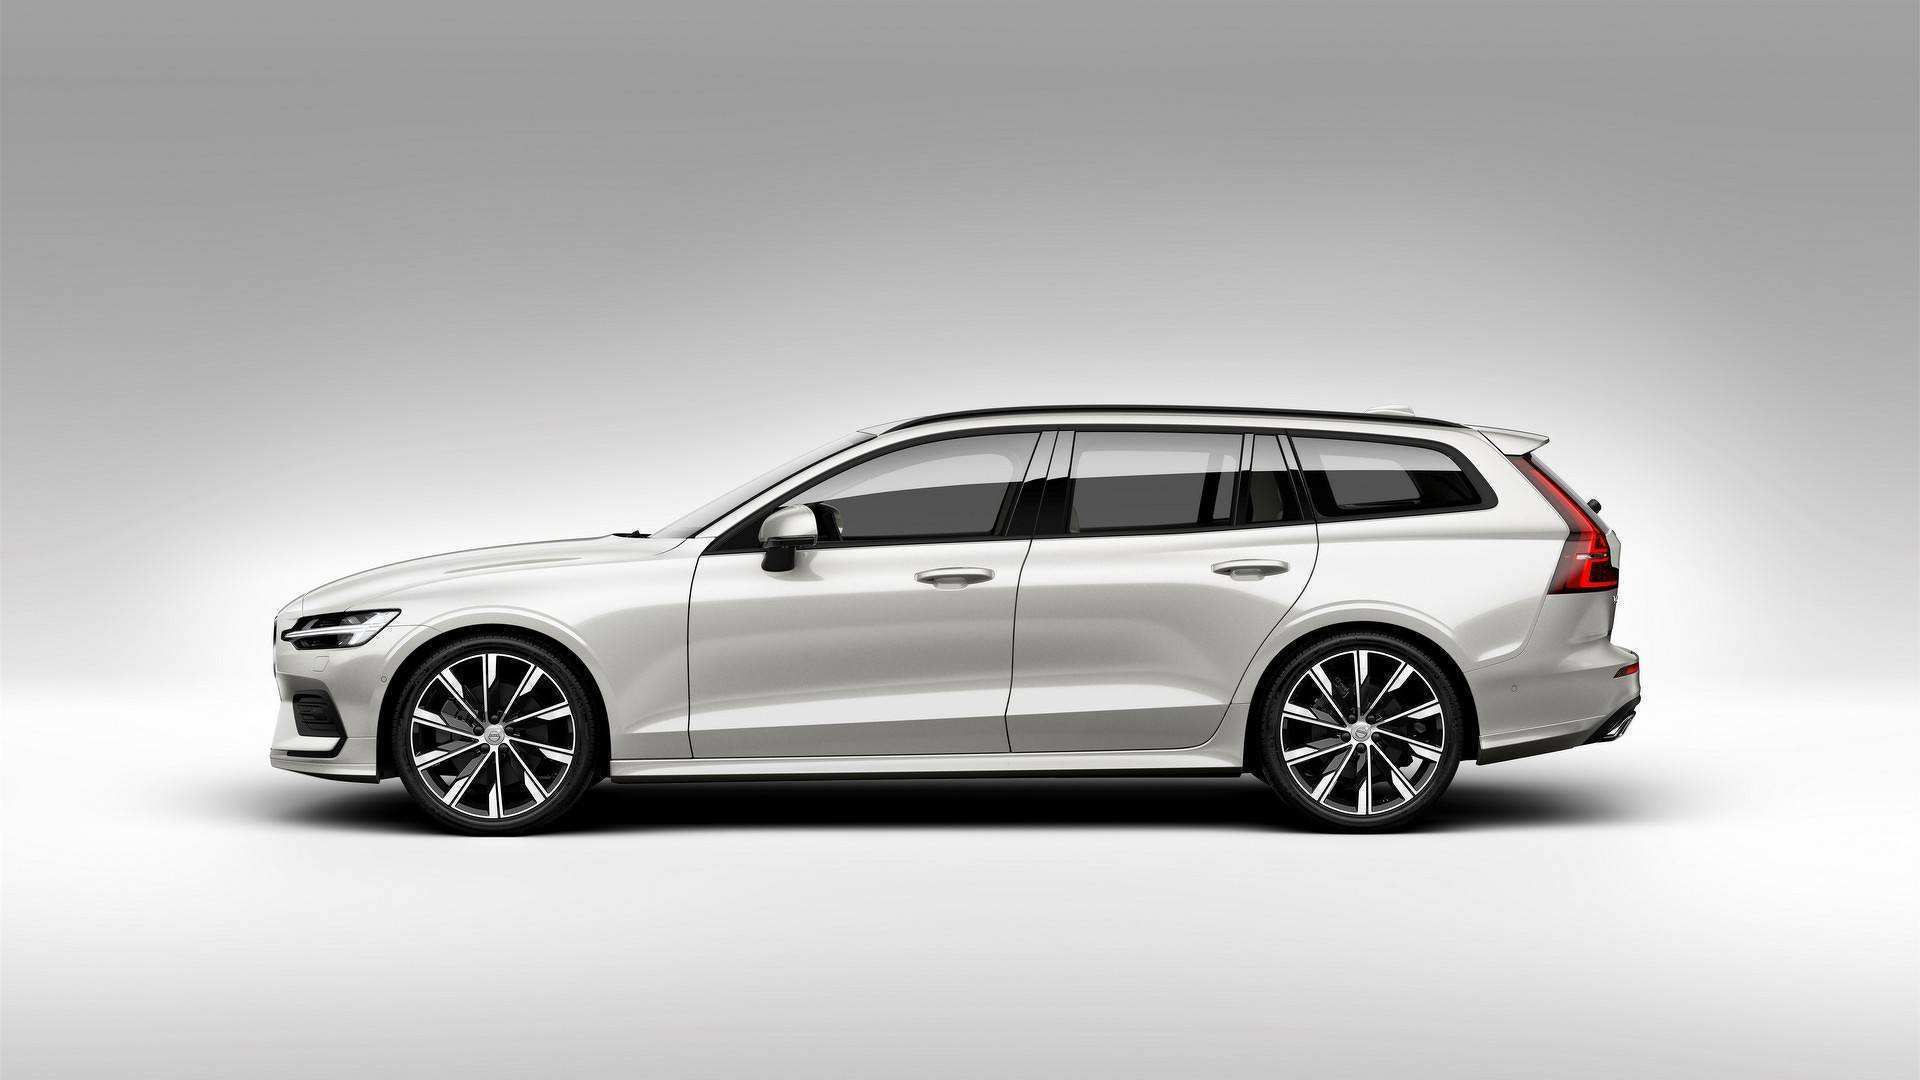 60 The Best Volvo 2019 V60 Cross Country Exterior And Interior